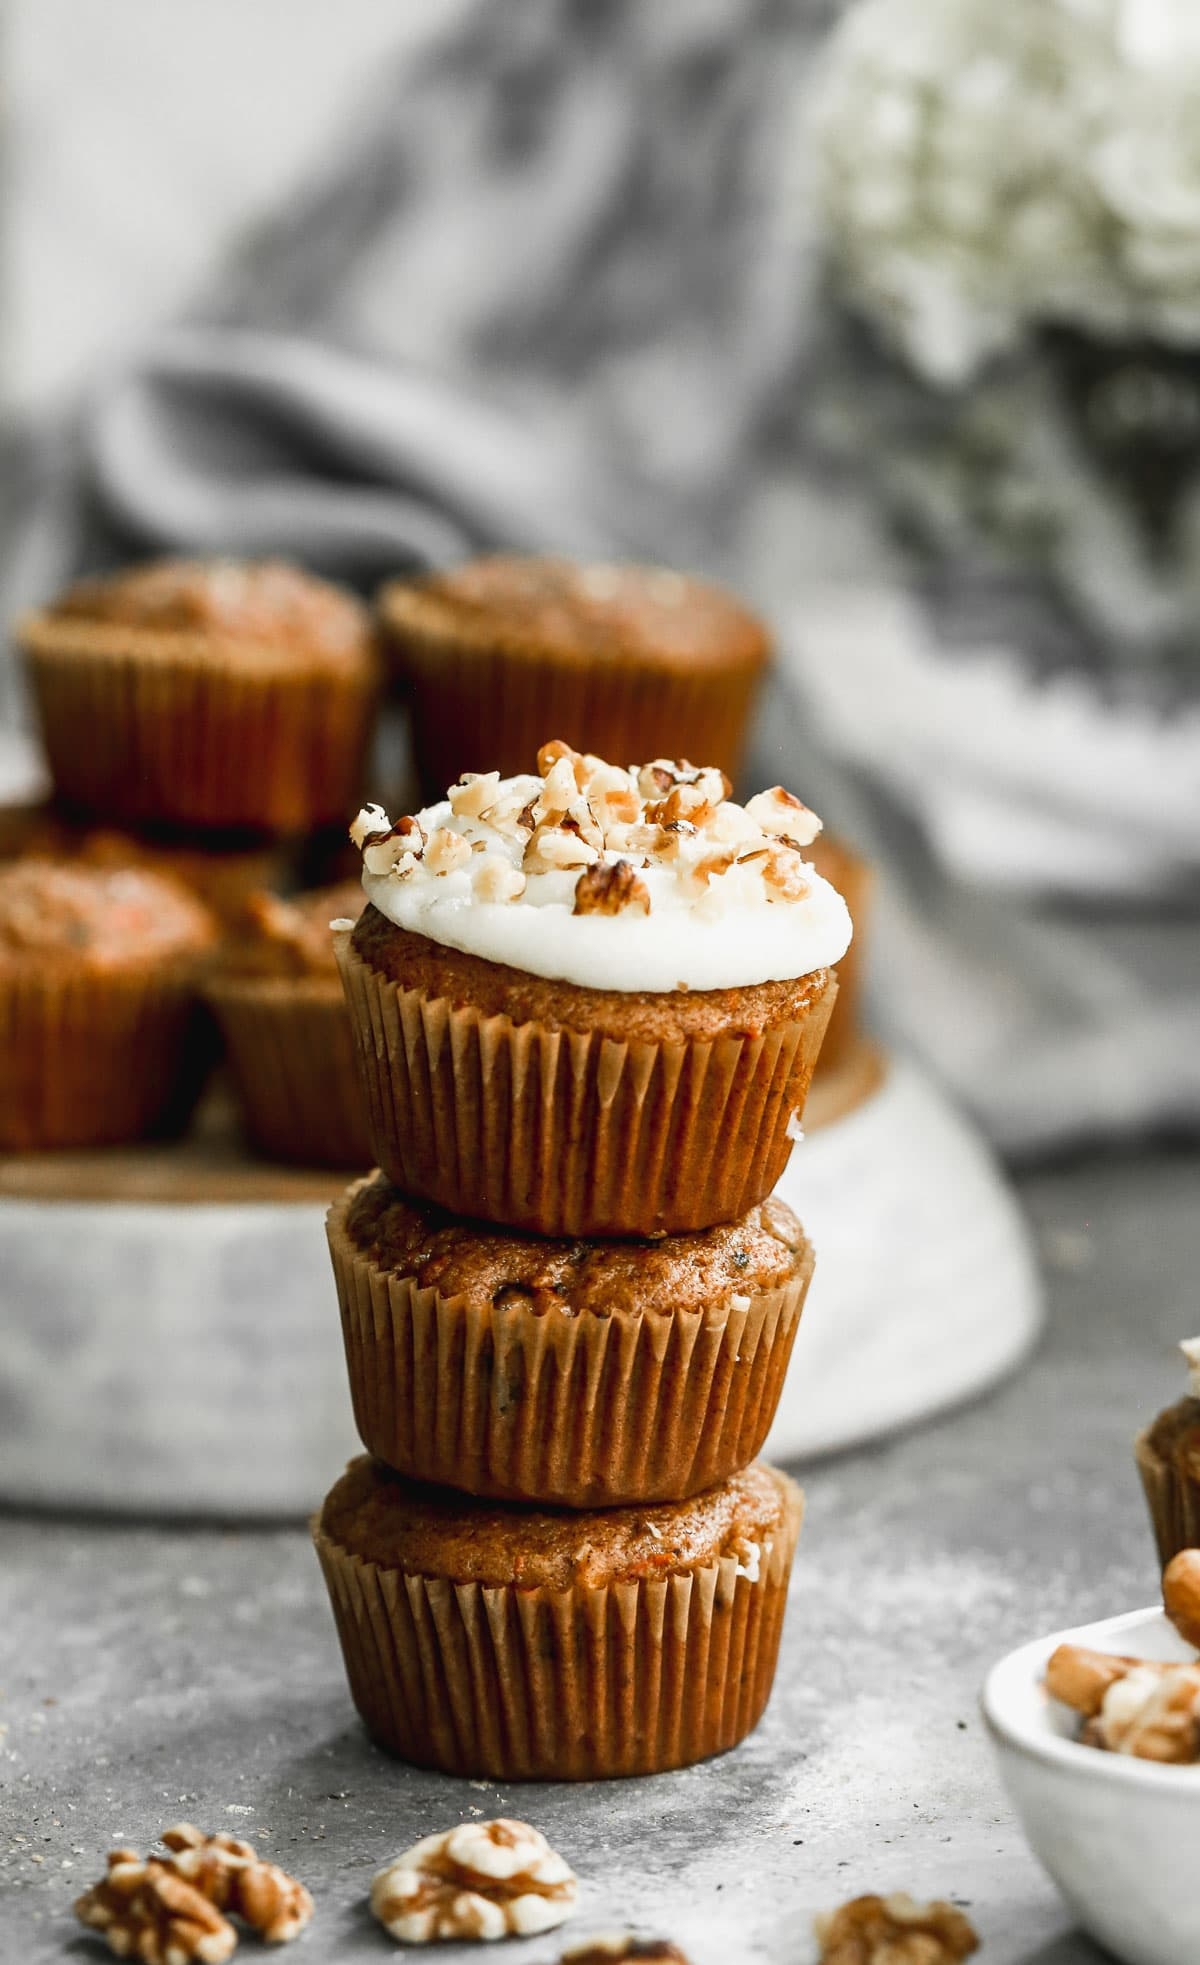 A stack of loaded carrot cupcakes with cream cheese frosting